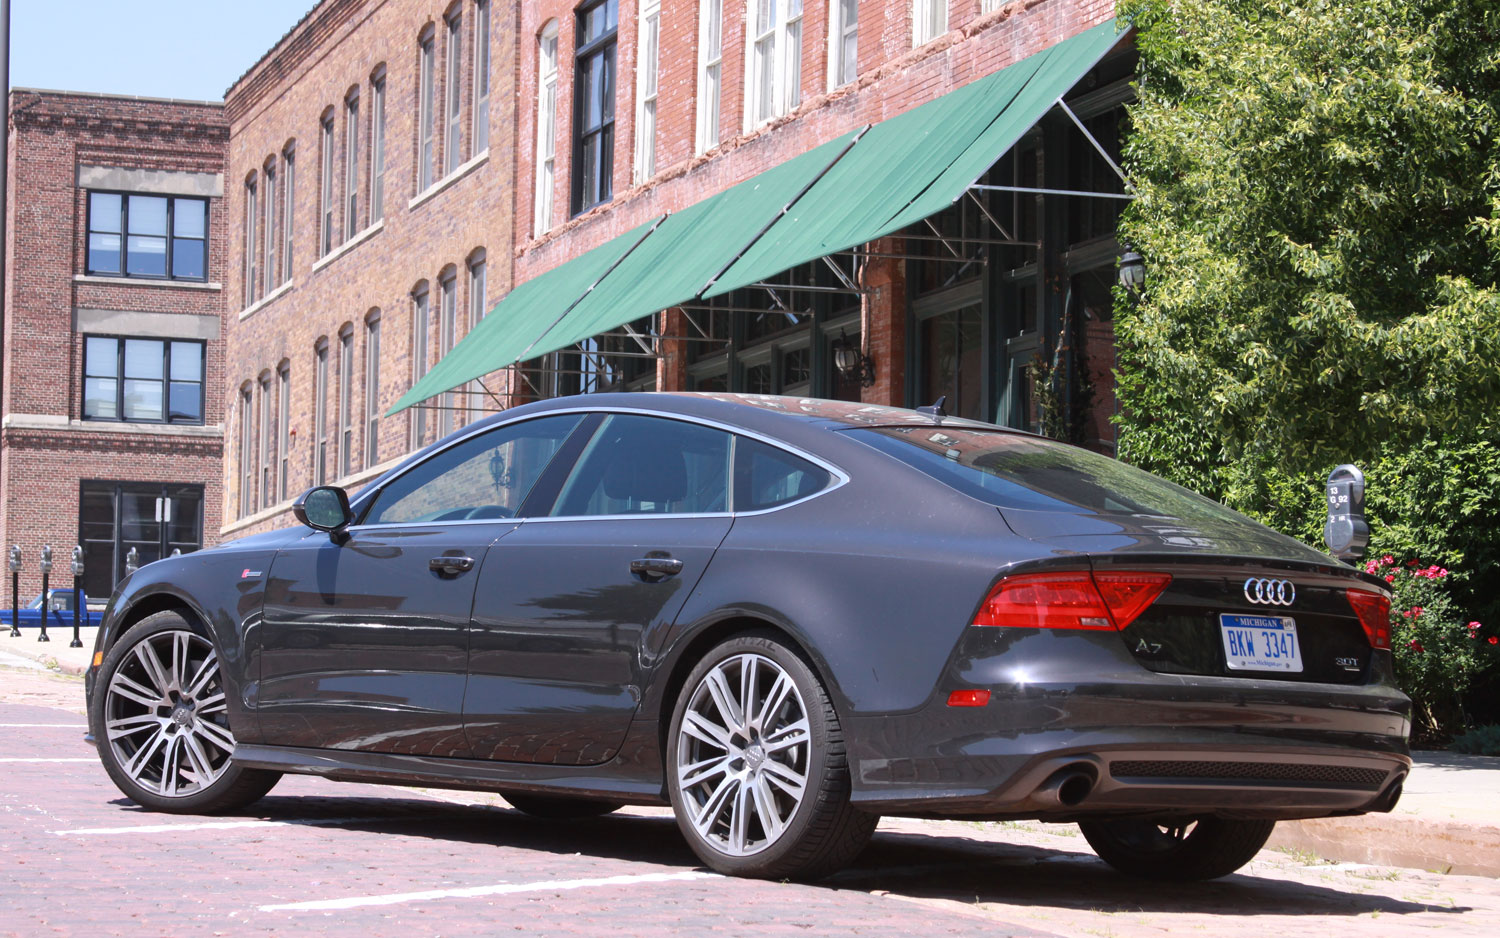 four seasons 2012 audi a7 north platte ne to morris il. Black Bedroom Furniture Sets. Home Design Ideas